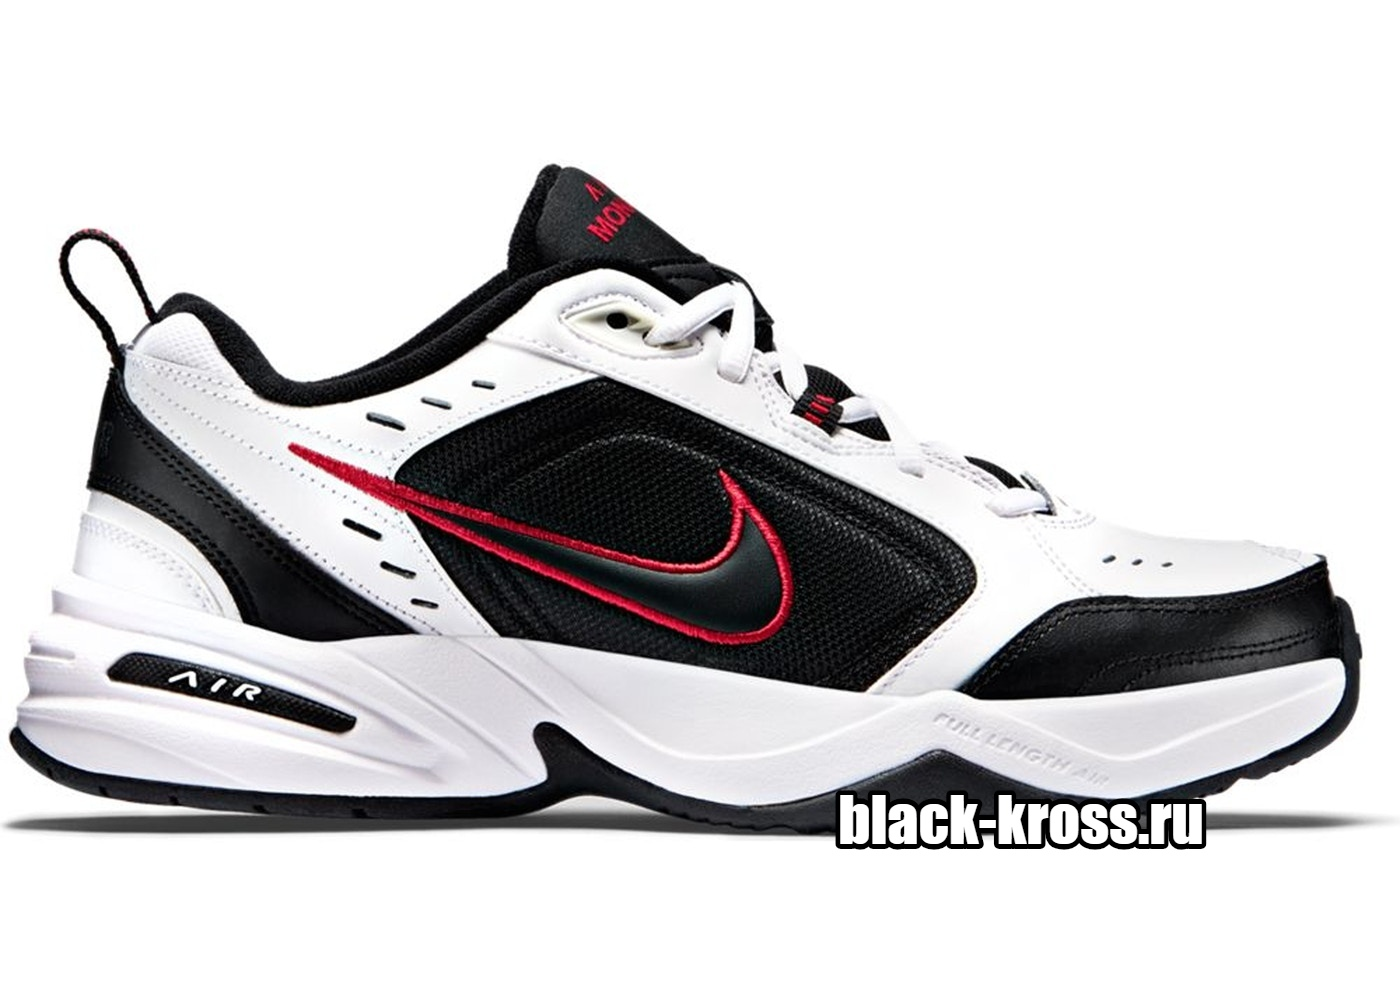 Nike Air Monarch IV White Black (41-45)